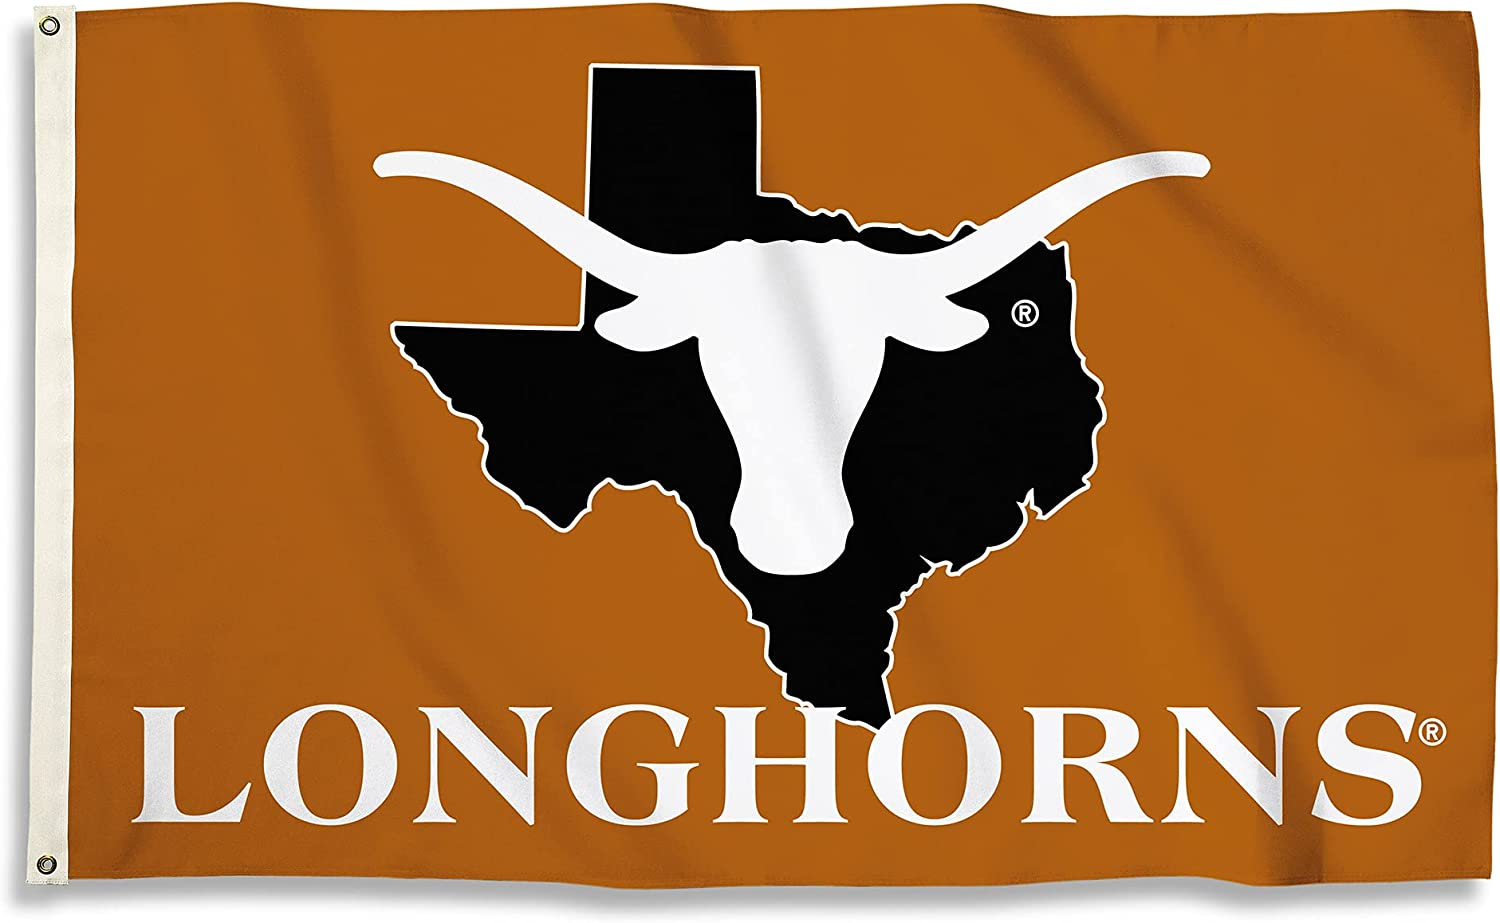 BSI PRODUCTS, INC. - Texas Longhorns 3'x5' Flag with Heavy-Duty Brass Grommets - UT Football, Basketball & Baseball Pride - High Durability - Designed for Indoor or Outdoor Use - Great Gift Idea